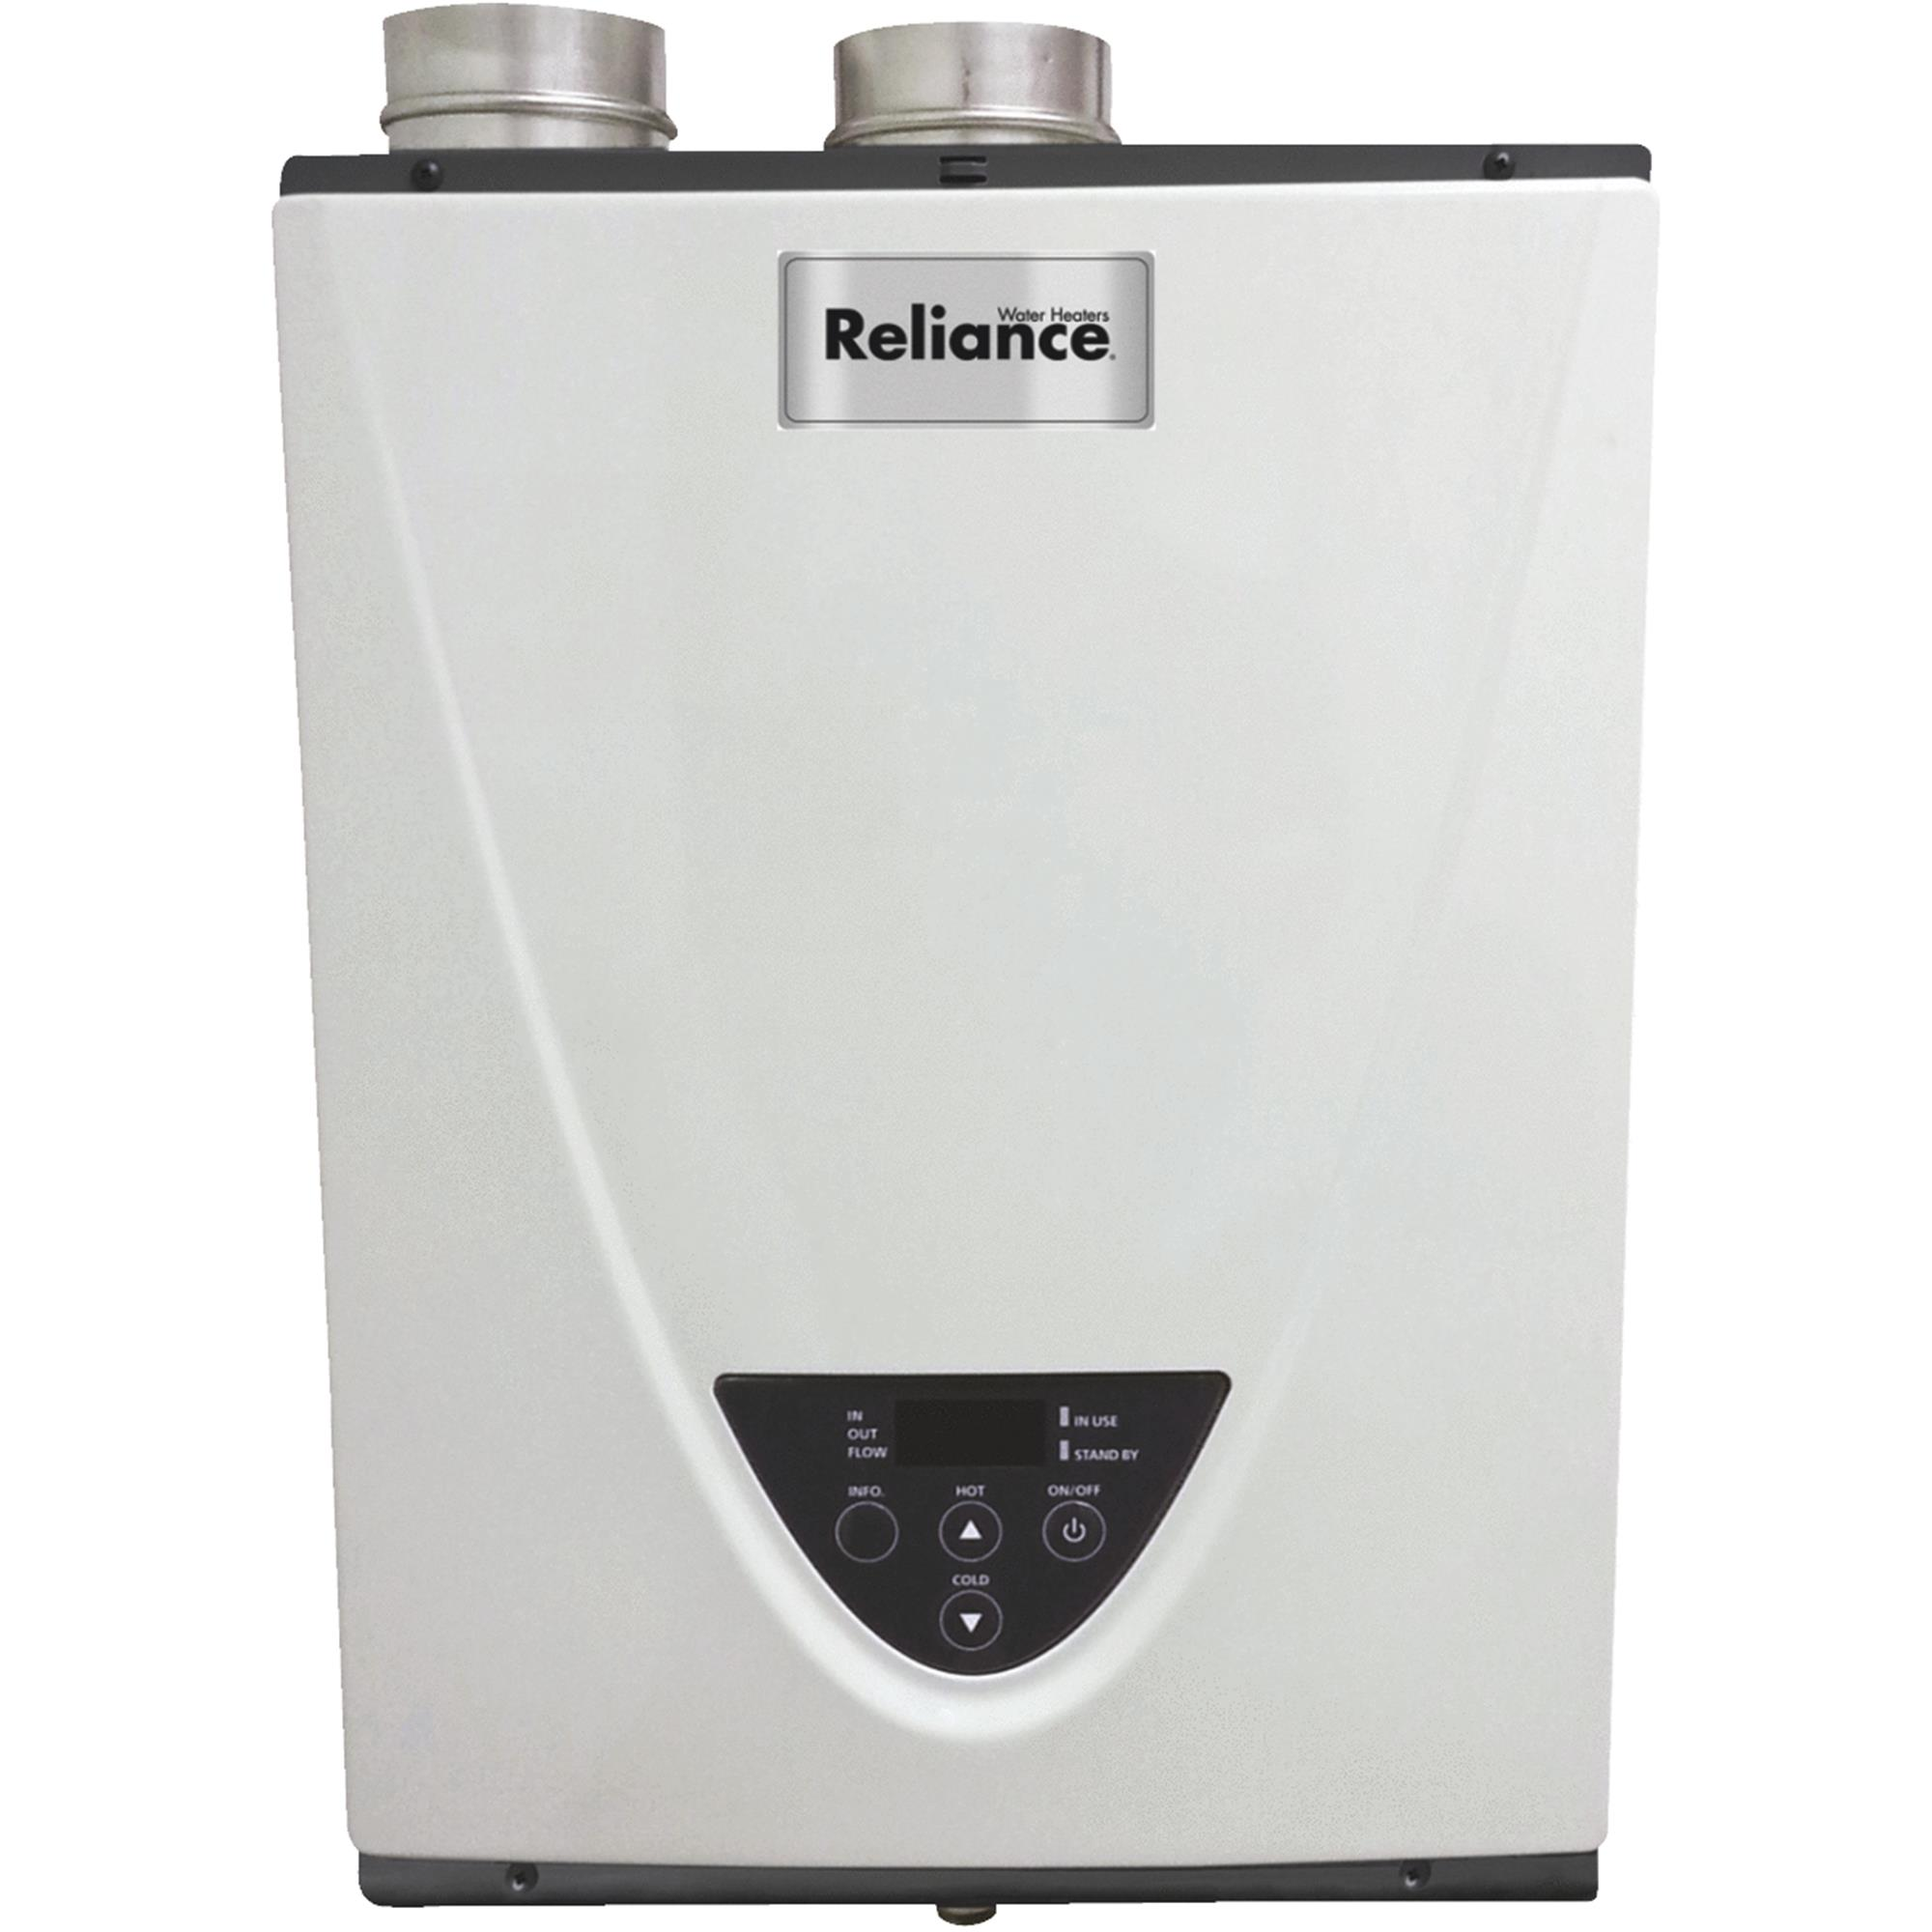 Reliance Series TS-340-GIH Natural Gas Tankless Water Heater